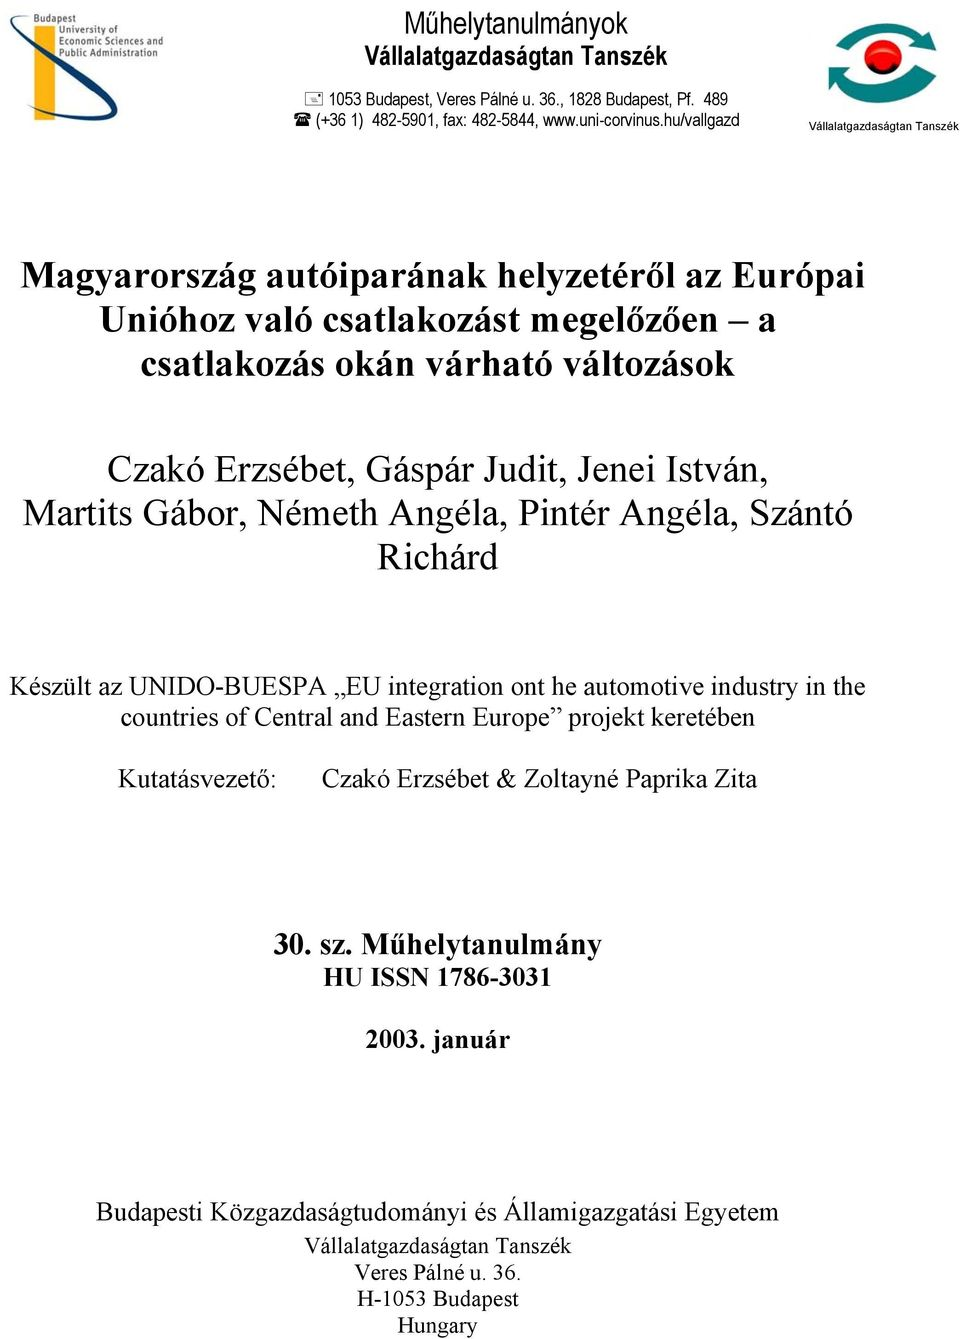 Martits Gábor, Németh Angéla, Pintér Angéla, Szántó Richárd Készült az UNIDO-BUESPA EU integration ont he automotive industry in the countries of Central and Eastern Europe projekt keretében